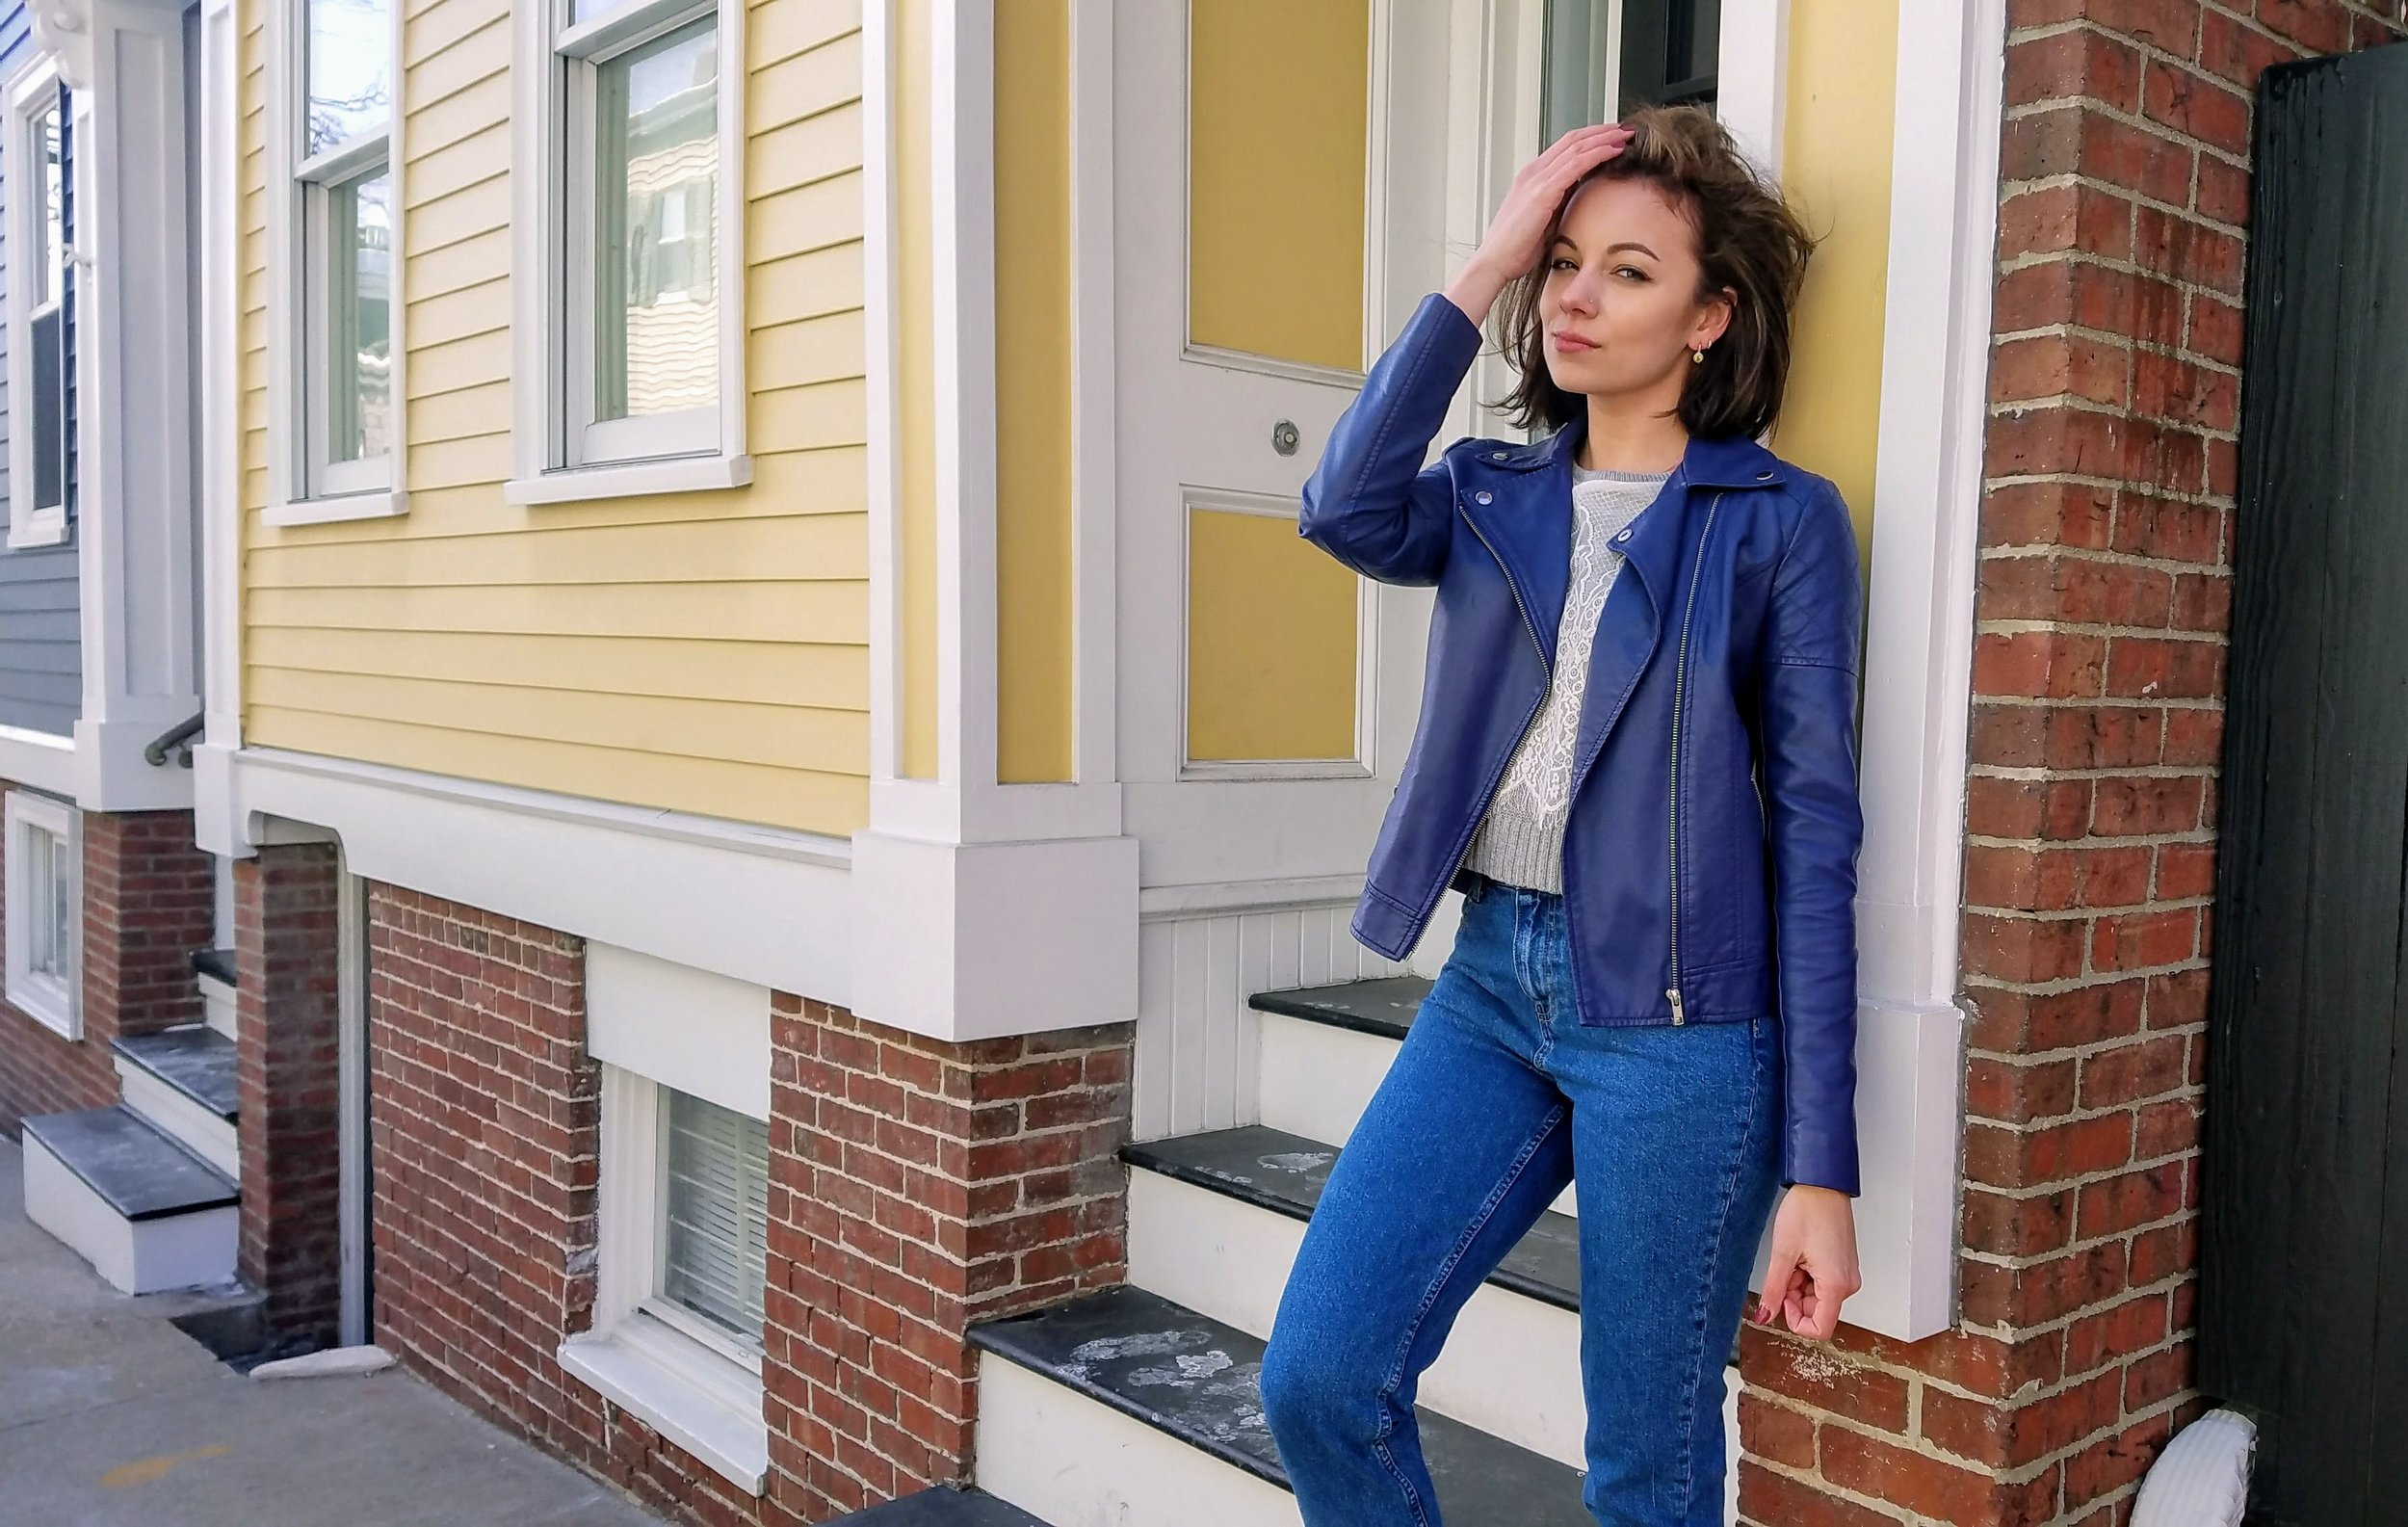 Blue jacket, gray sweater, mom jeans, Nike sneakers outfit leaning on brick building